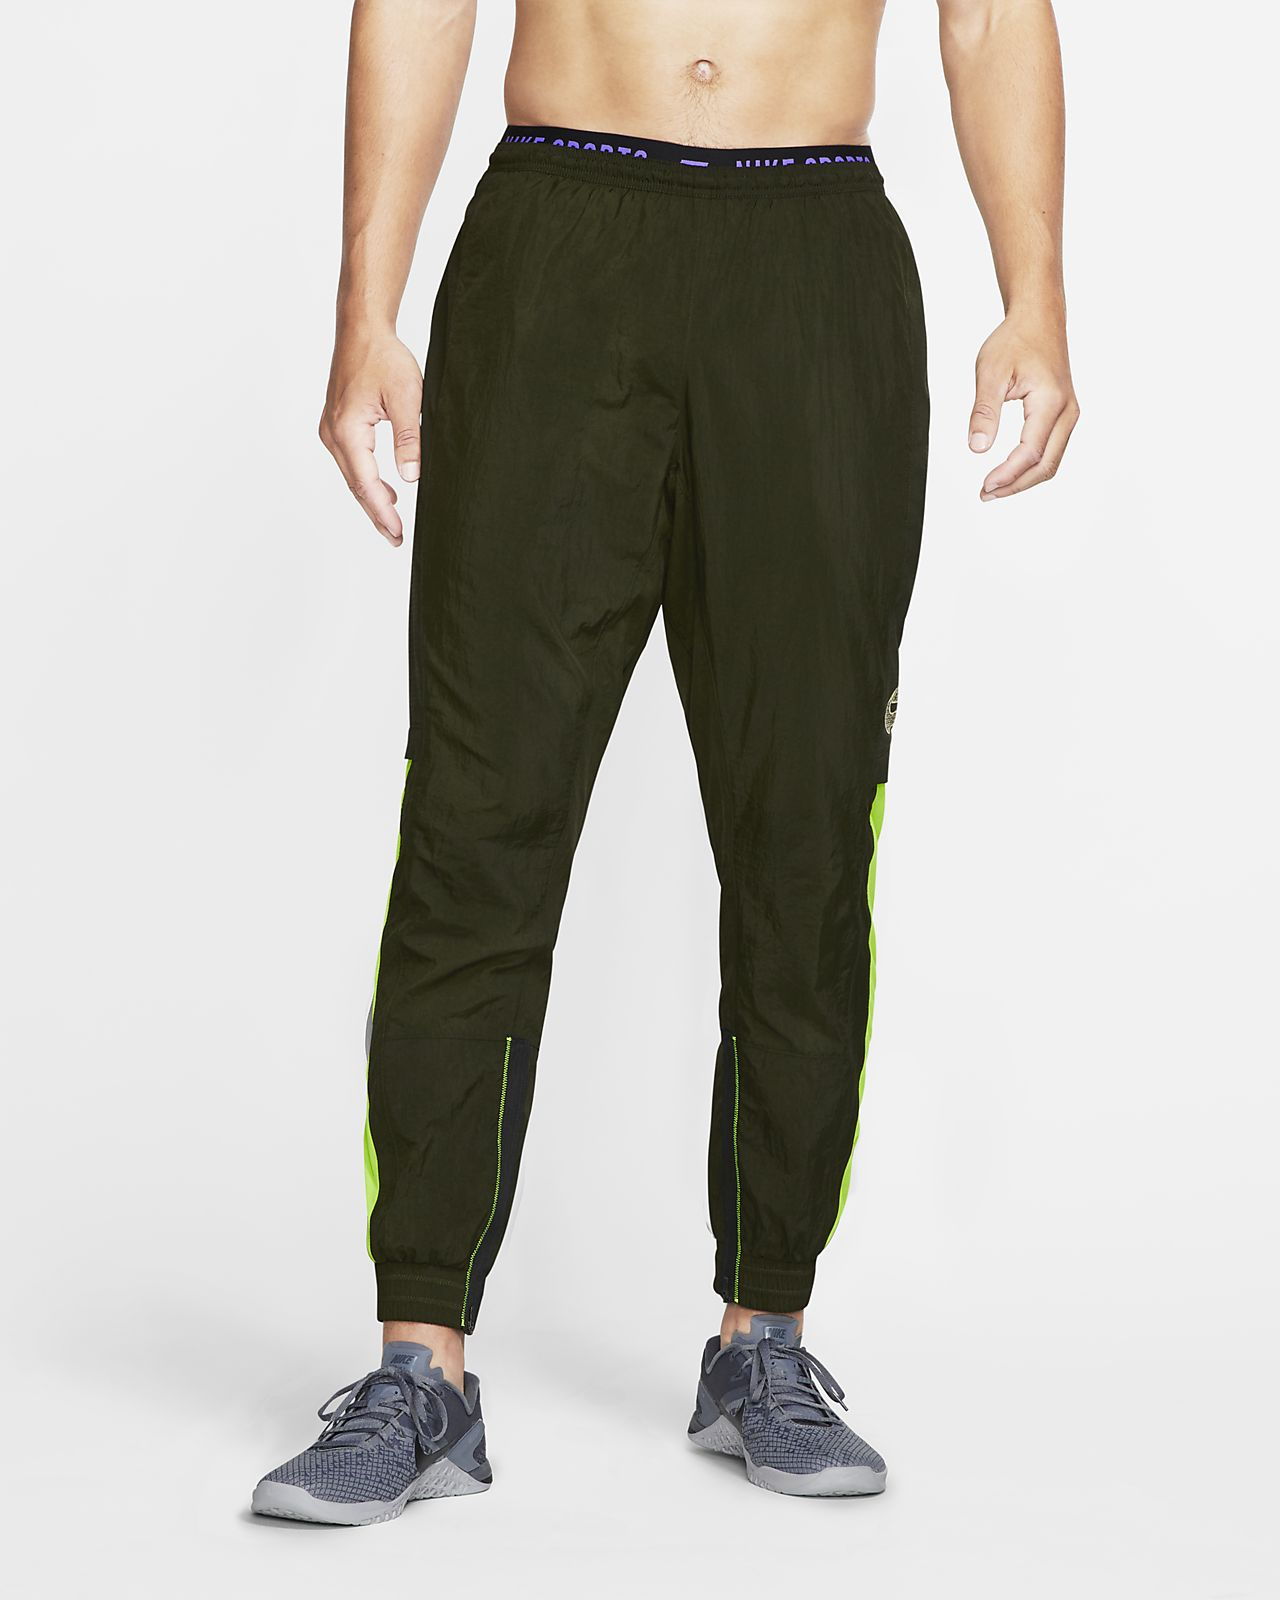 Pantalon de training Nike Dri-FIT Flex pour Homme